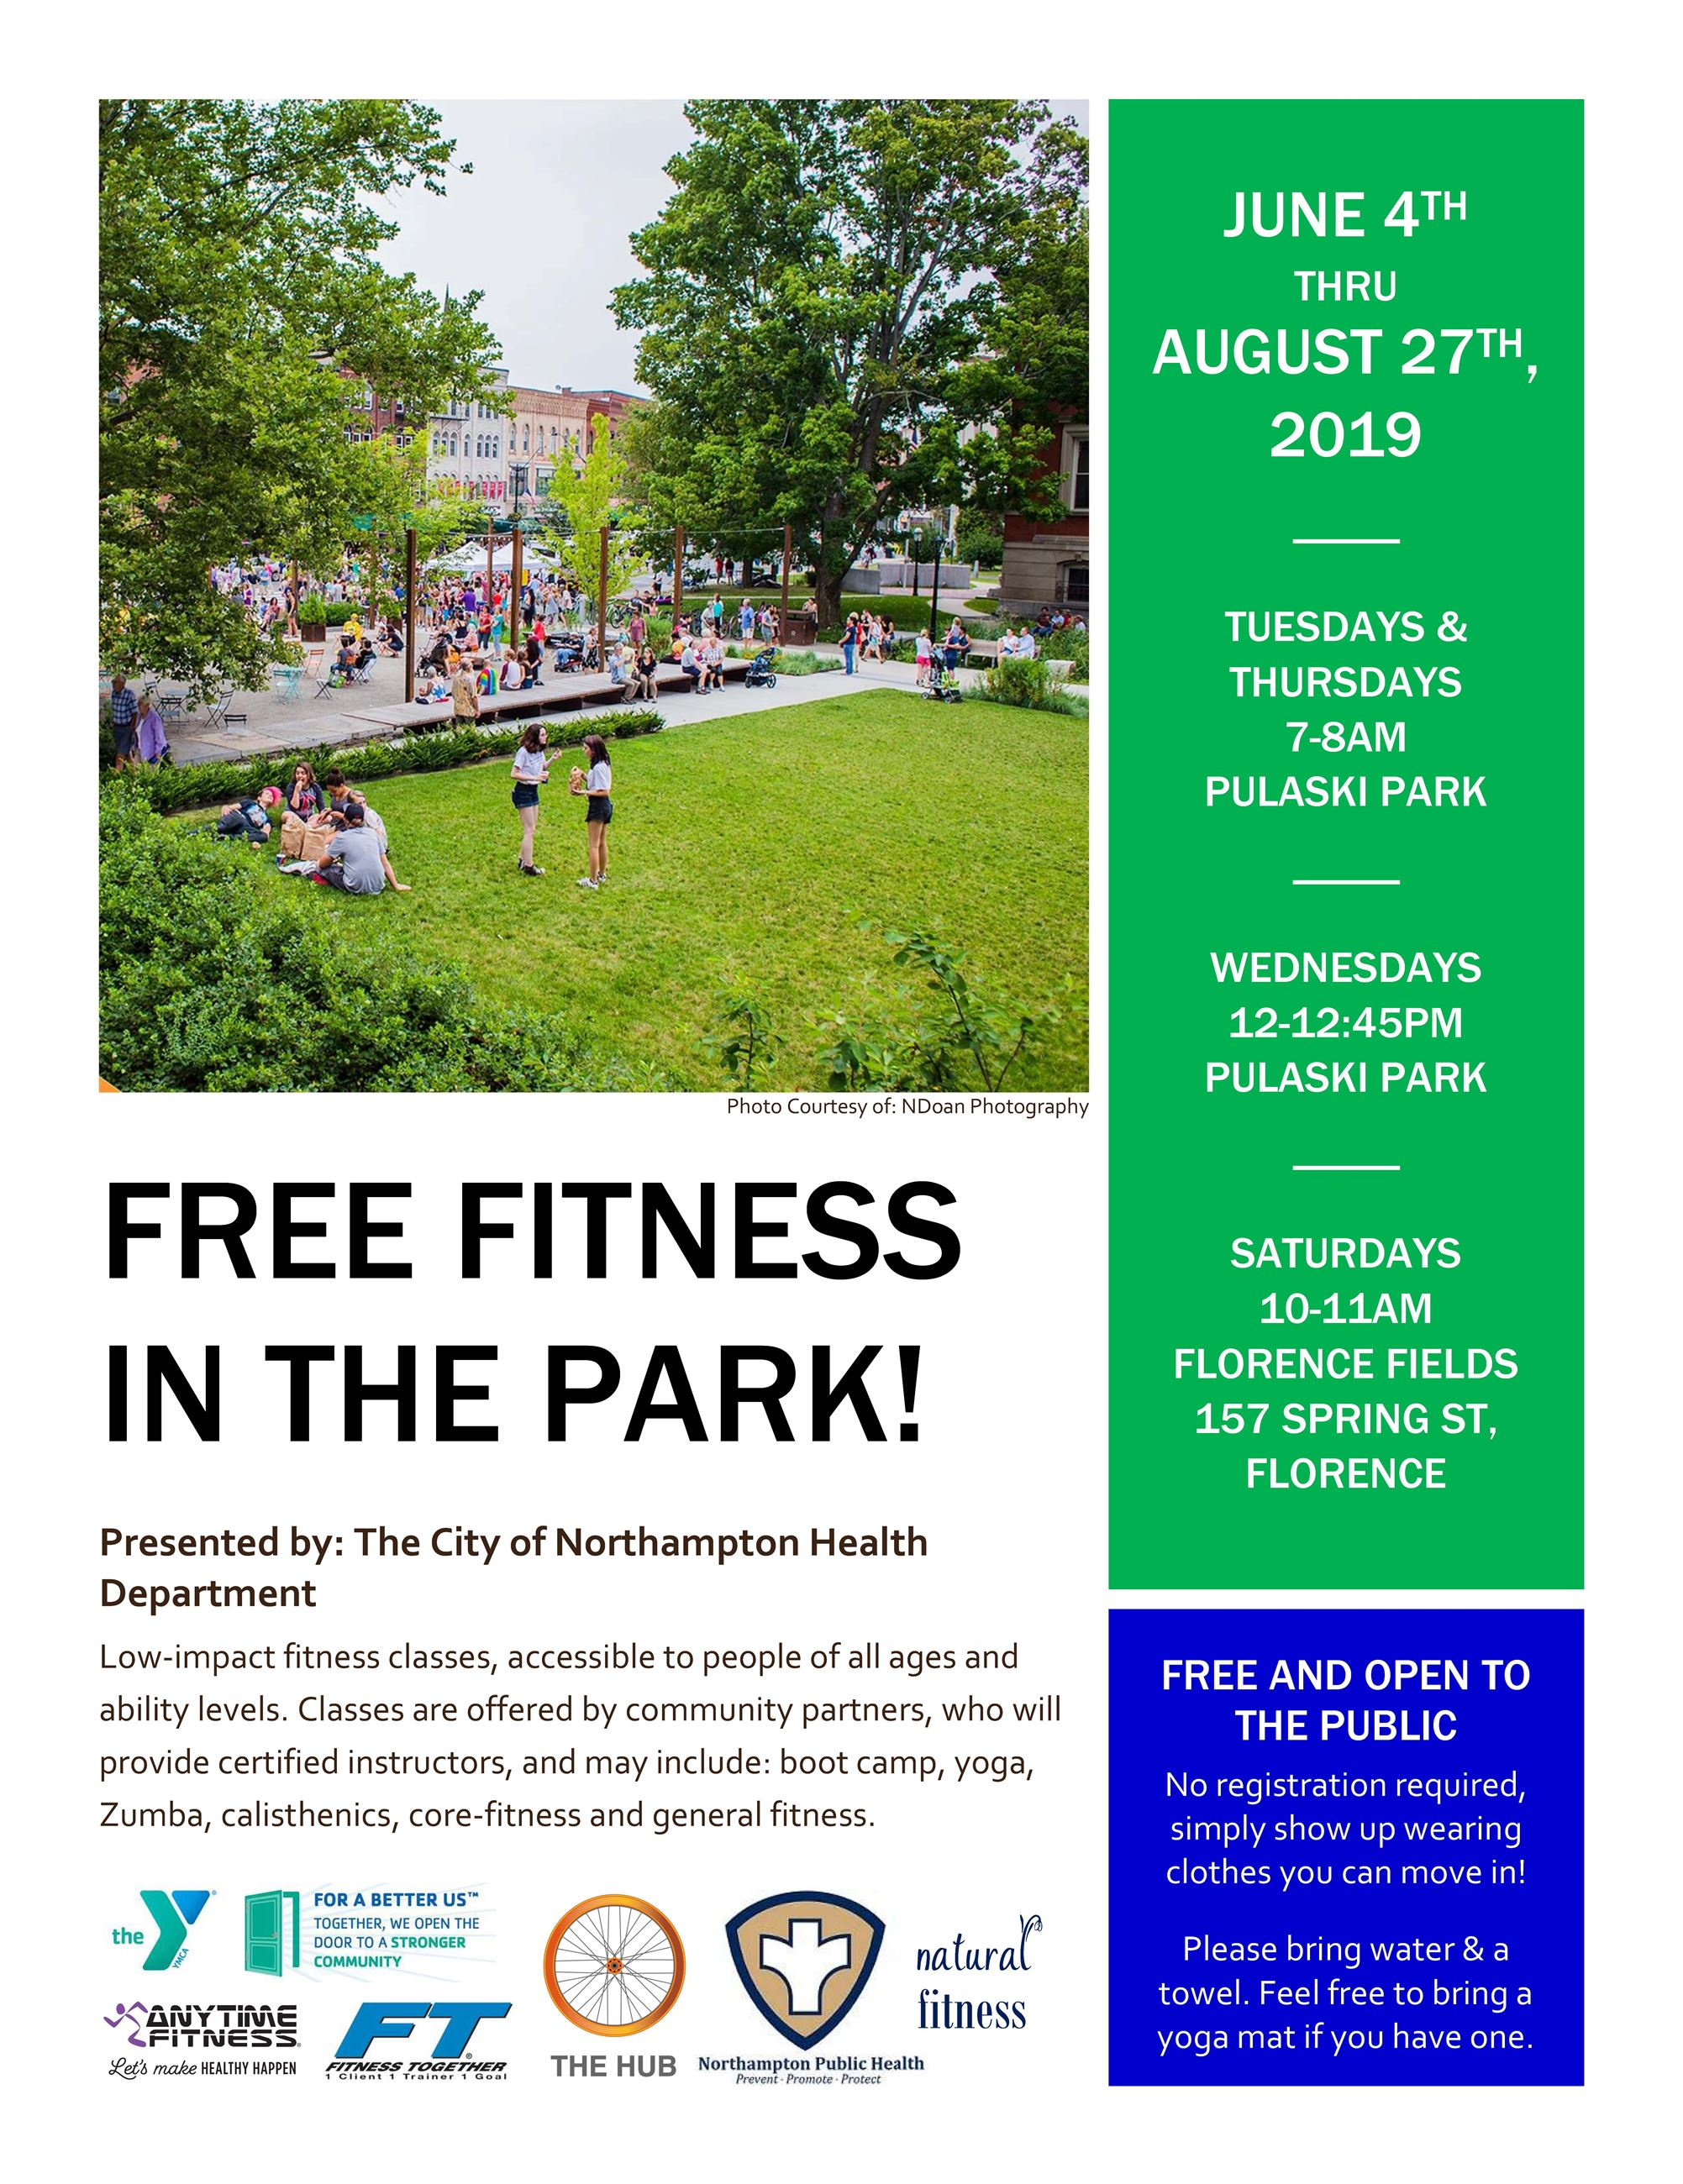 Image of Fitness In Park flyer